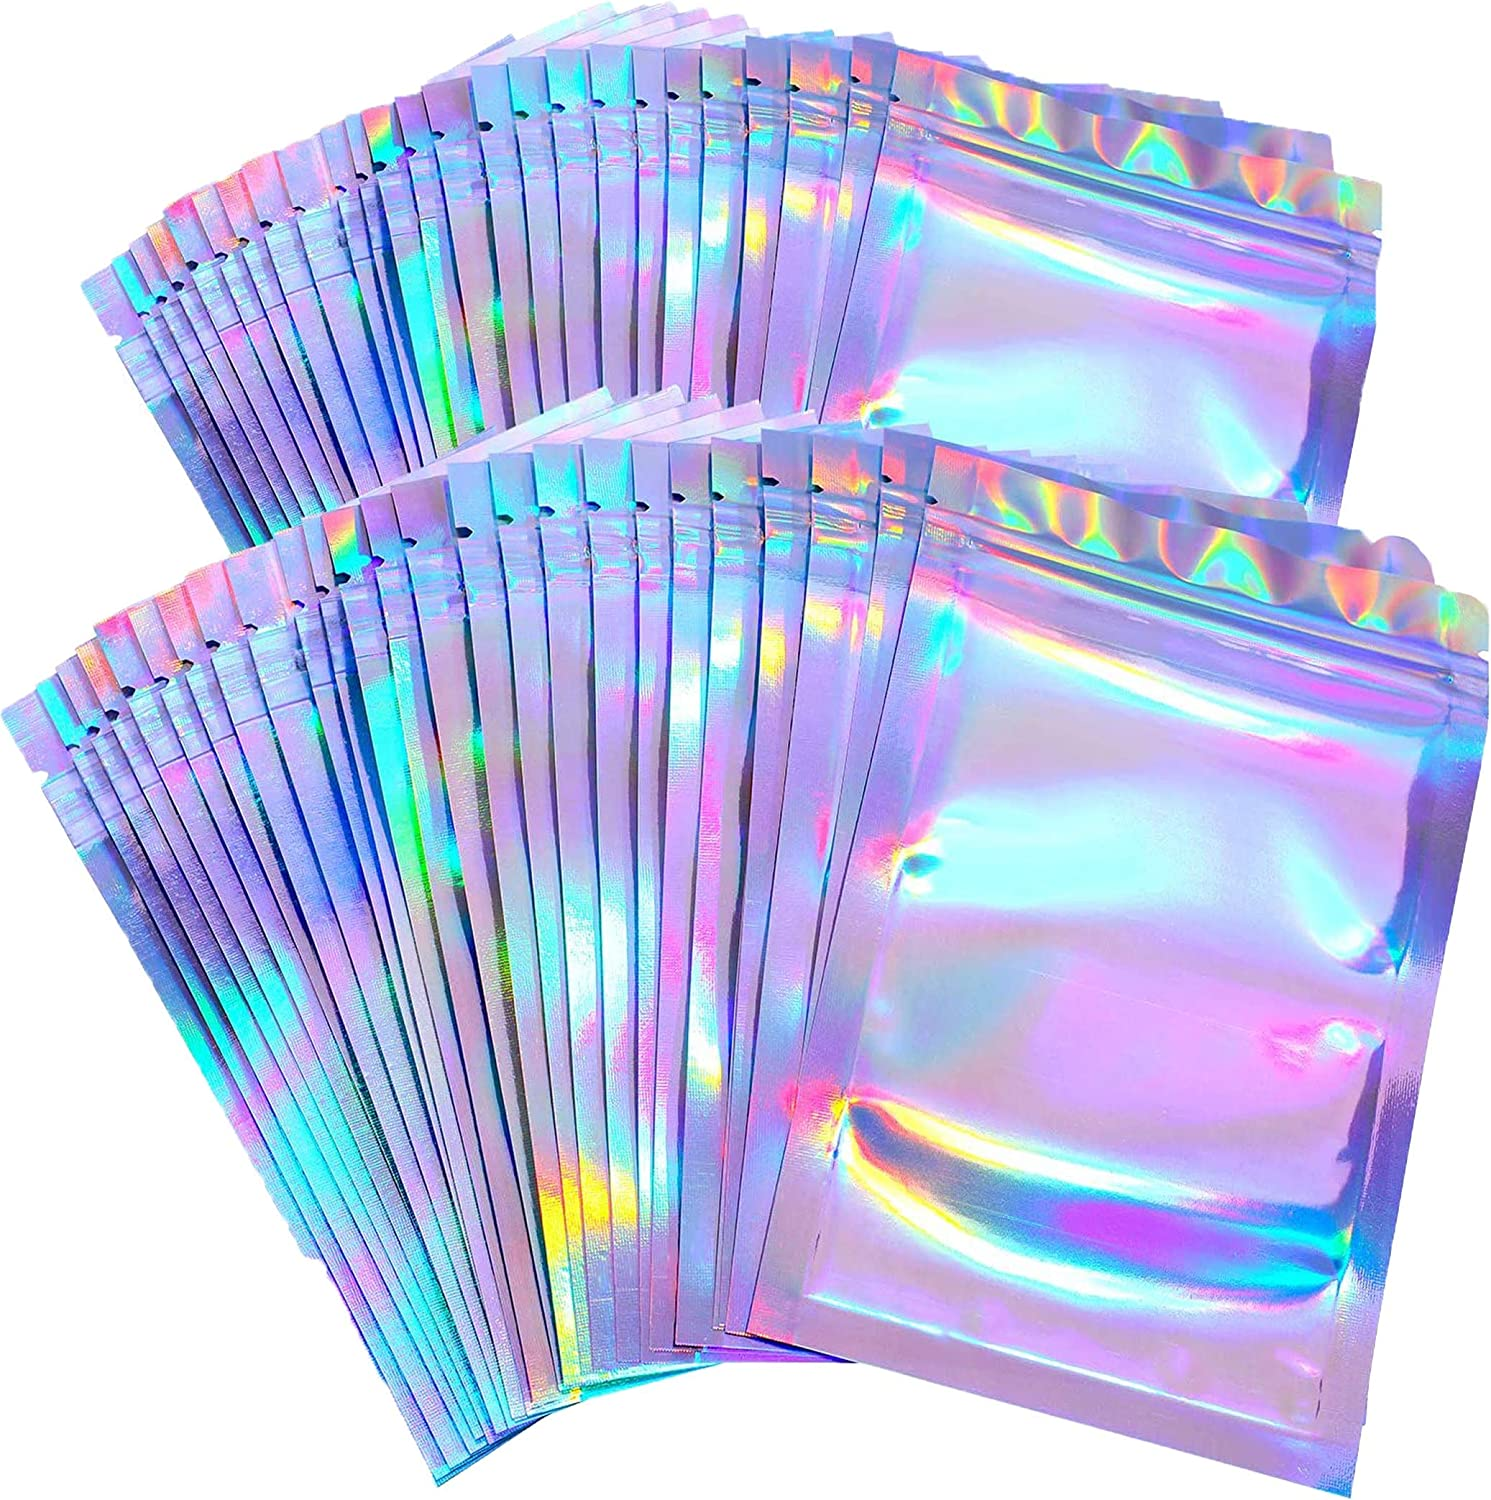 100 Pack Smell Proof Bags with Ziplock - Resealable Mylar Bags with Clear Window - Package Bags - Food Storage Bags - Lip Gloss Bags Packaging (Holographic, 4in x 6in)